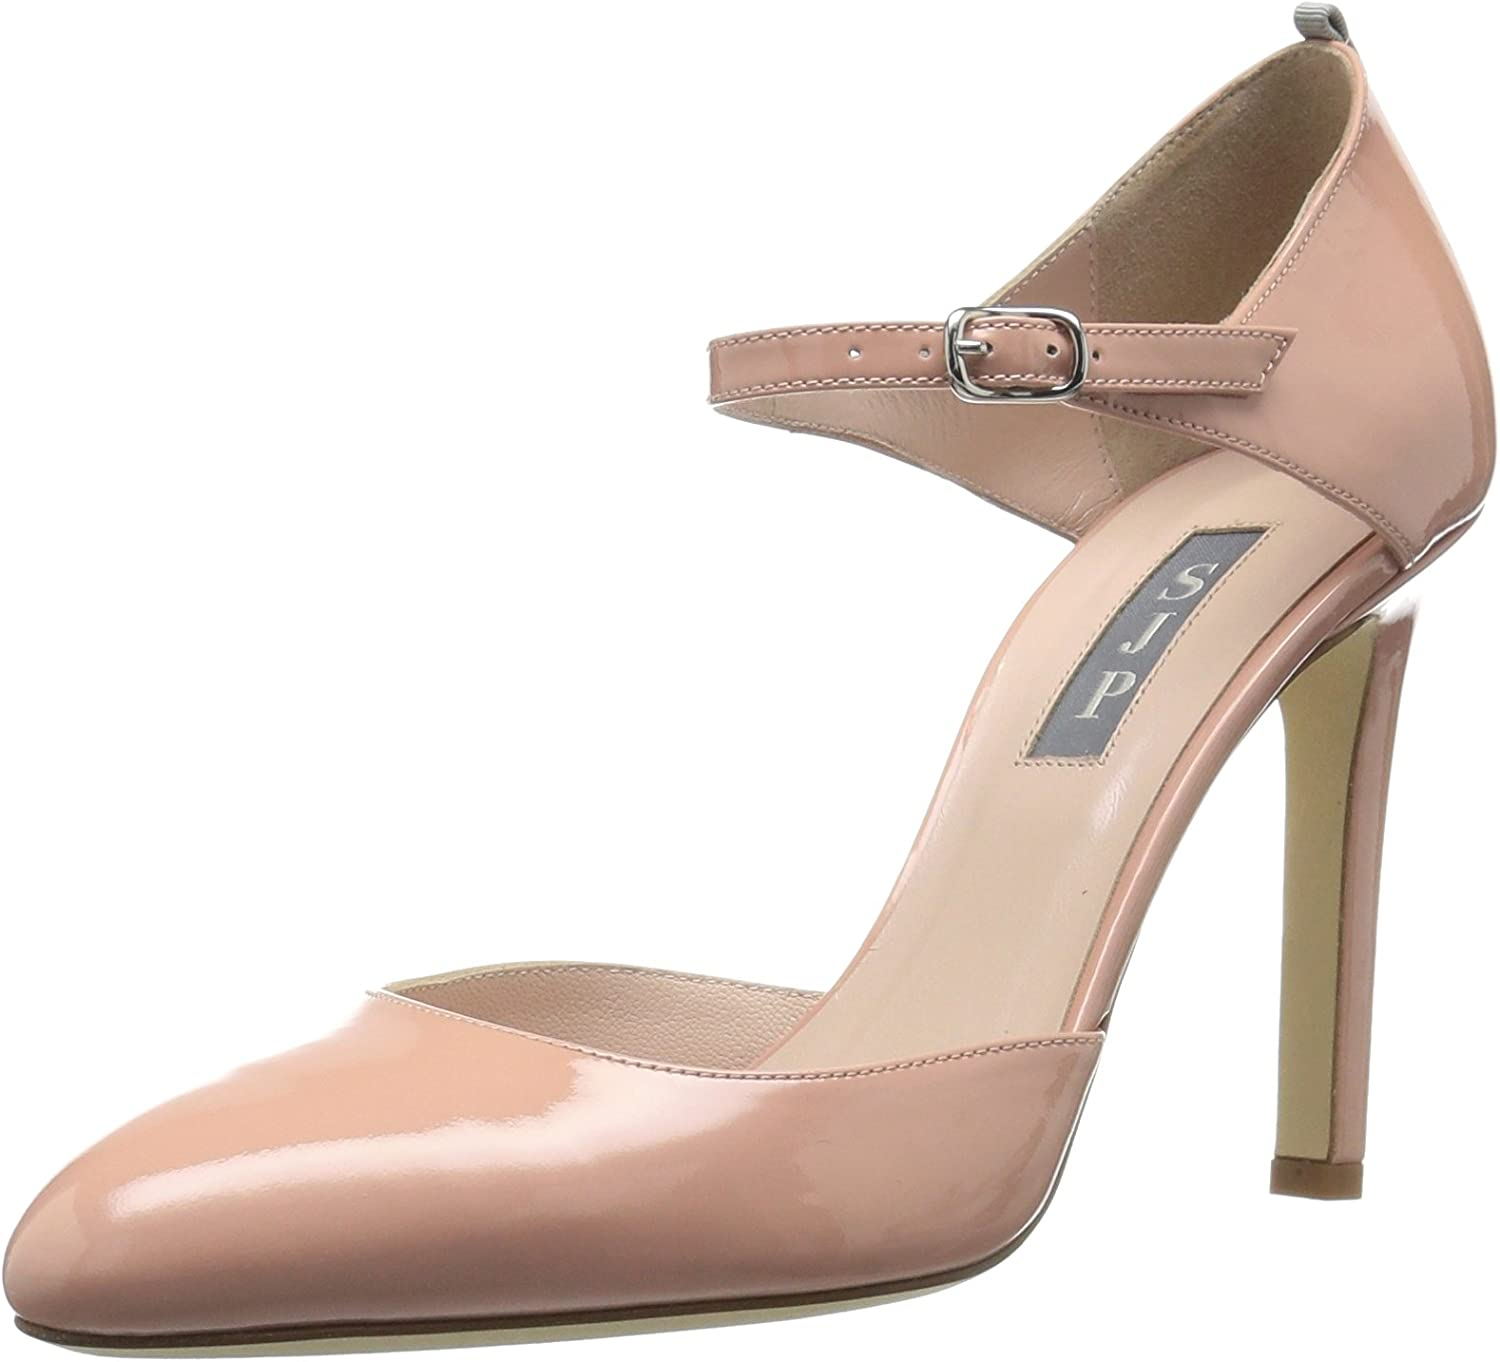 SJP by Sarah Jessica Parker Womens Campbell Closed Toe Ankle Strap Pump